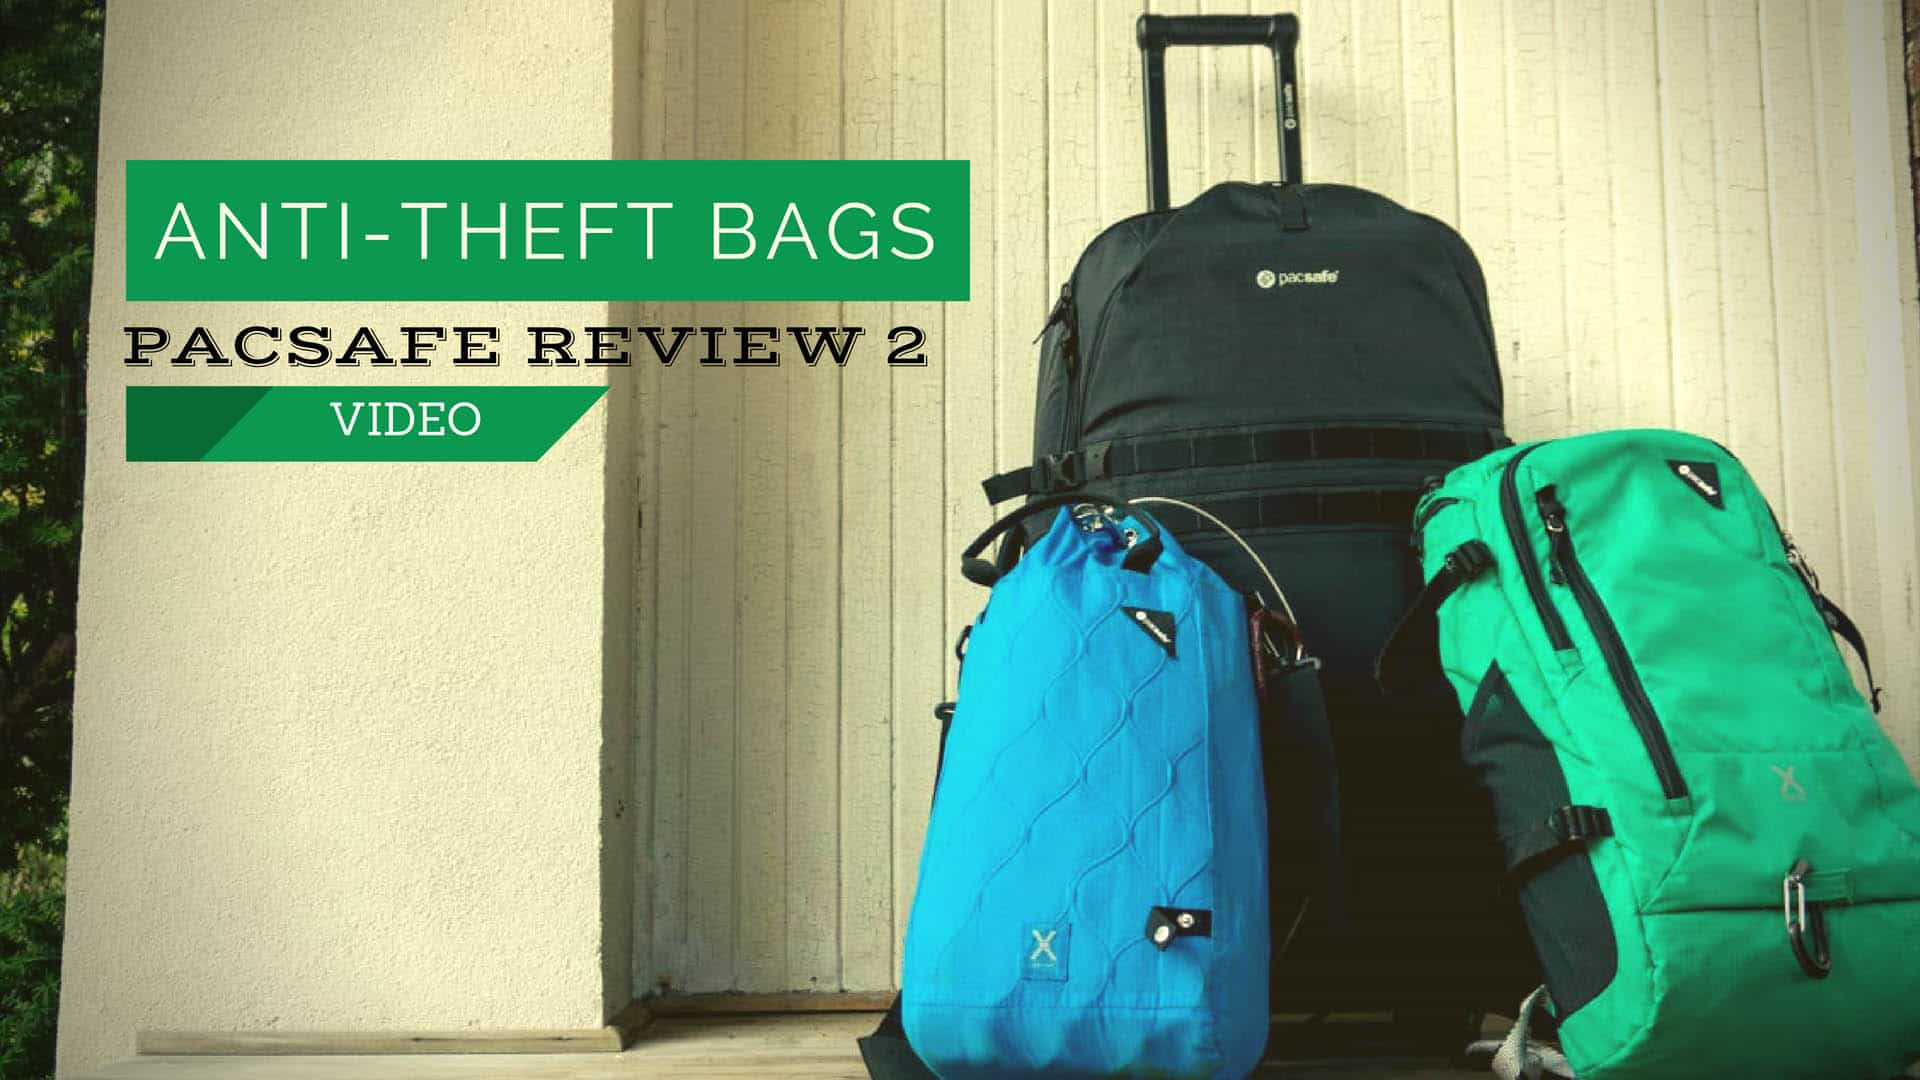 Anti-theft Bags: Pacsafe Review 2